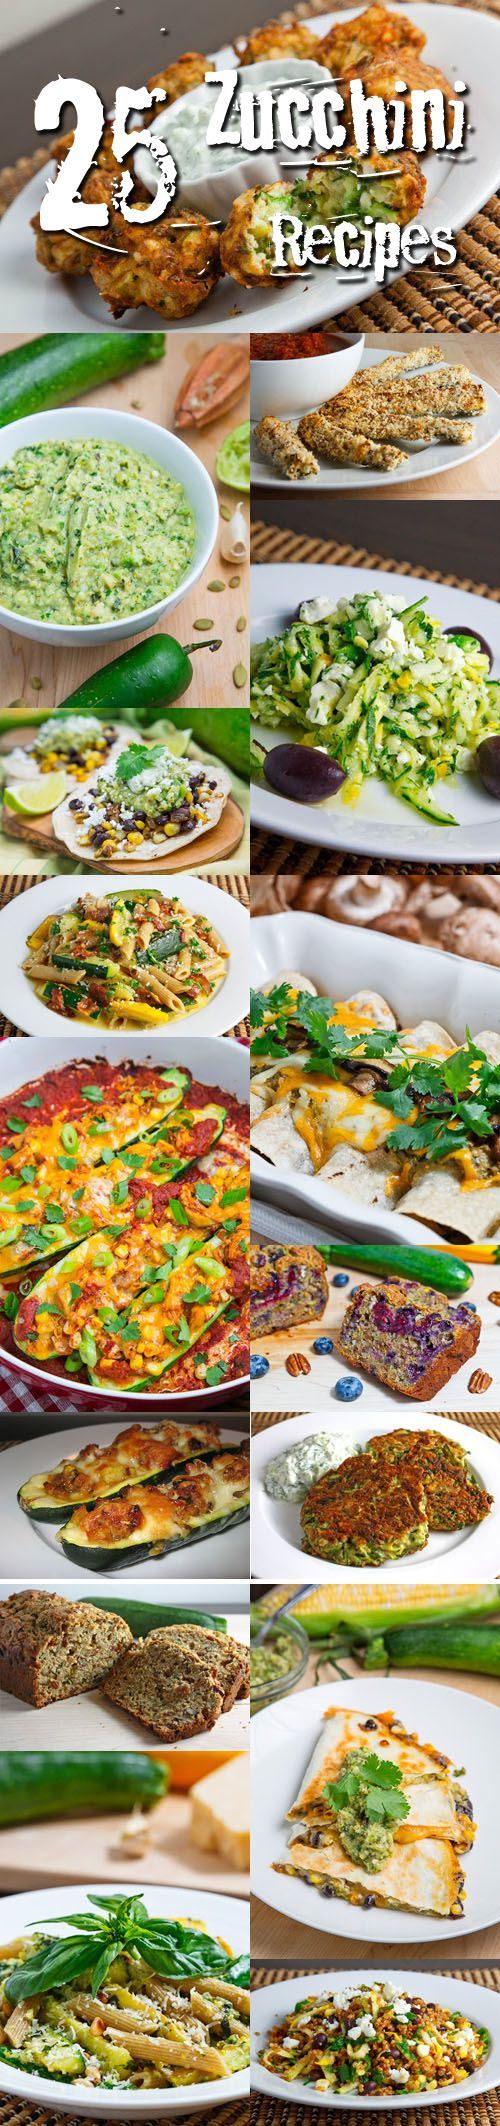 25 Zucchini Recipes - Kevin has quite a way with making everything look absolutely tantalizing! His recipes are so yummy! And by now, many people are up to their ears in zucchini from the garden, so perfect timing!